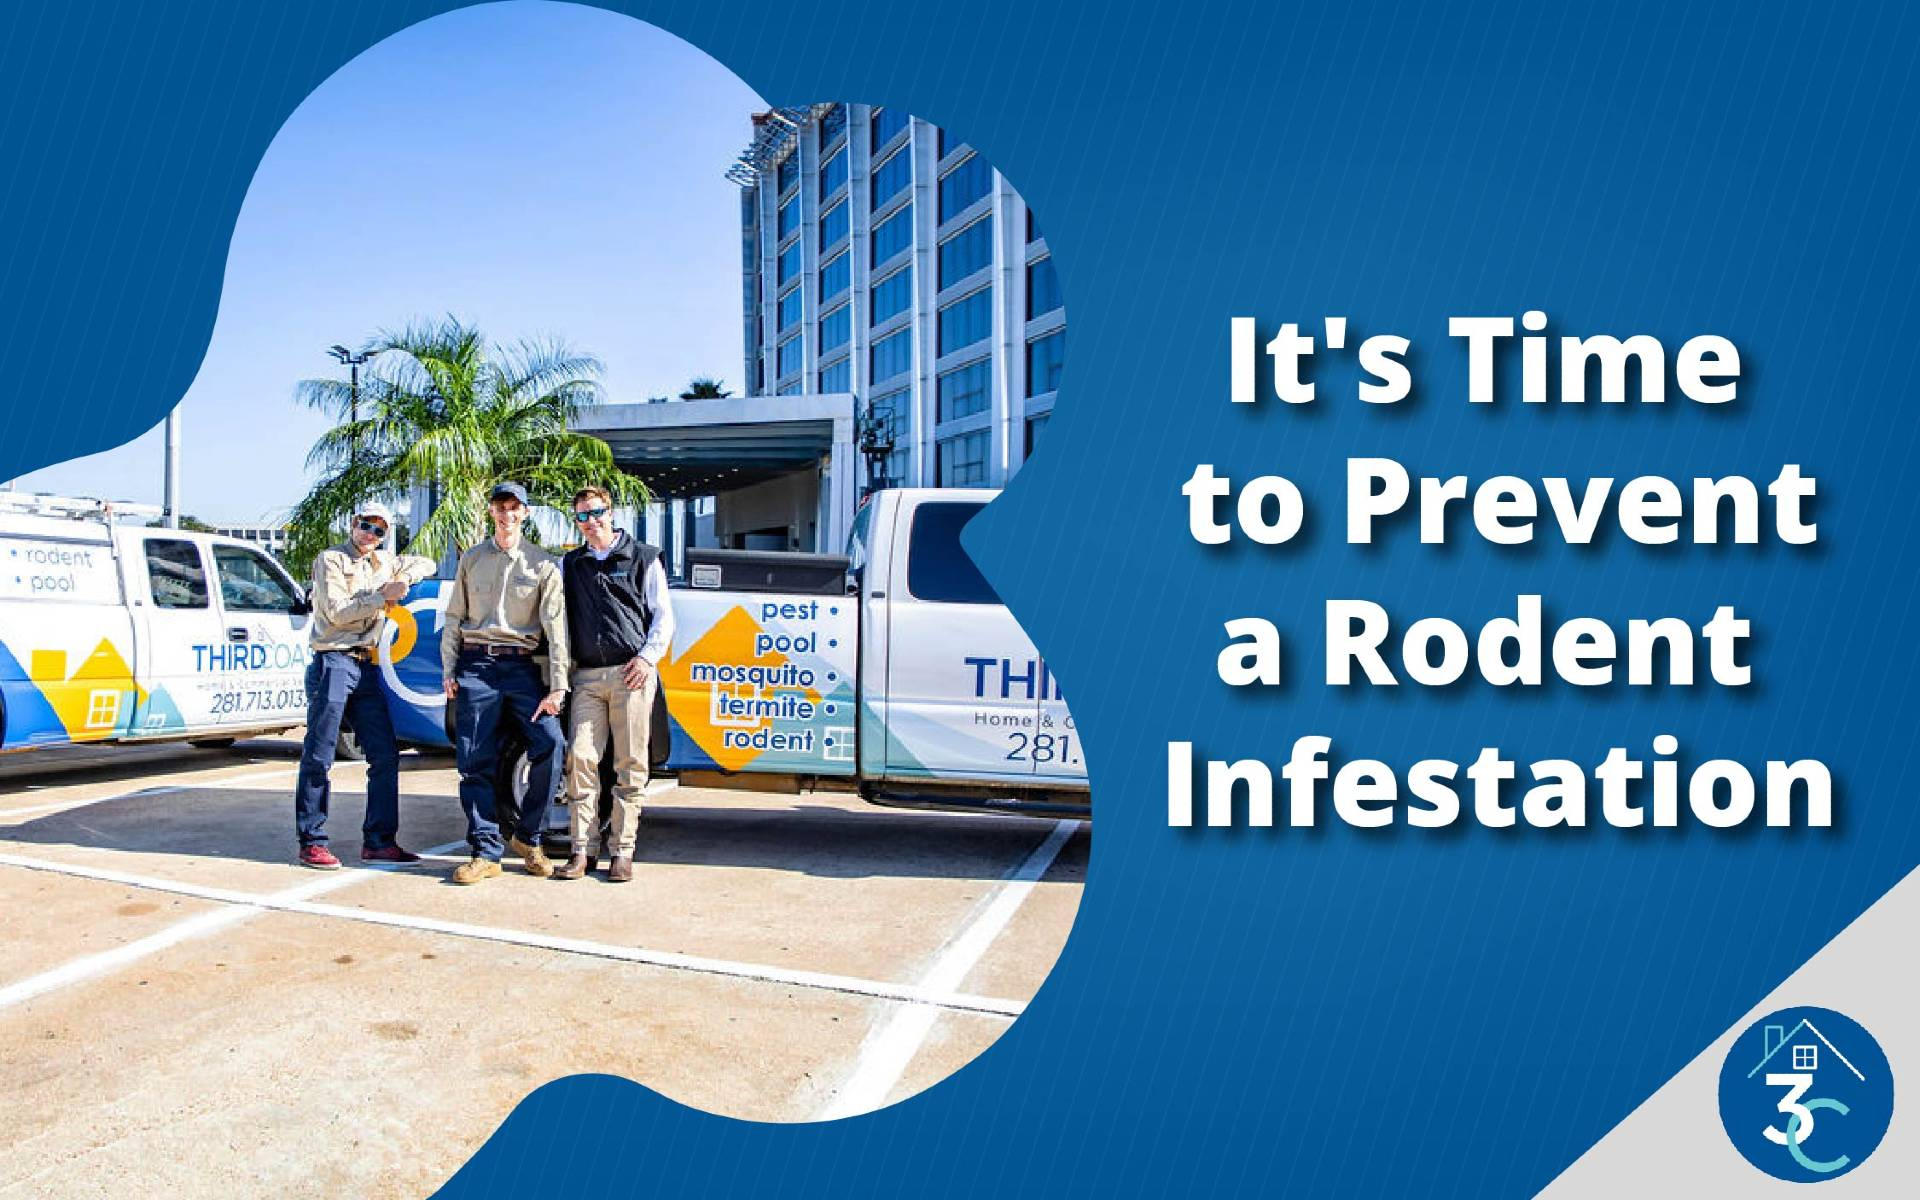 It's Time to Prevent a Rodent Infestation